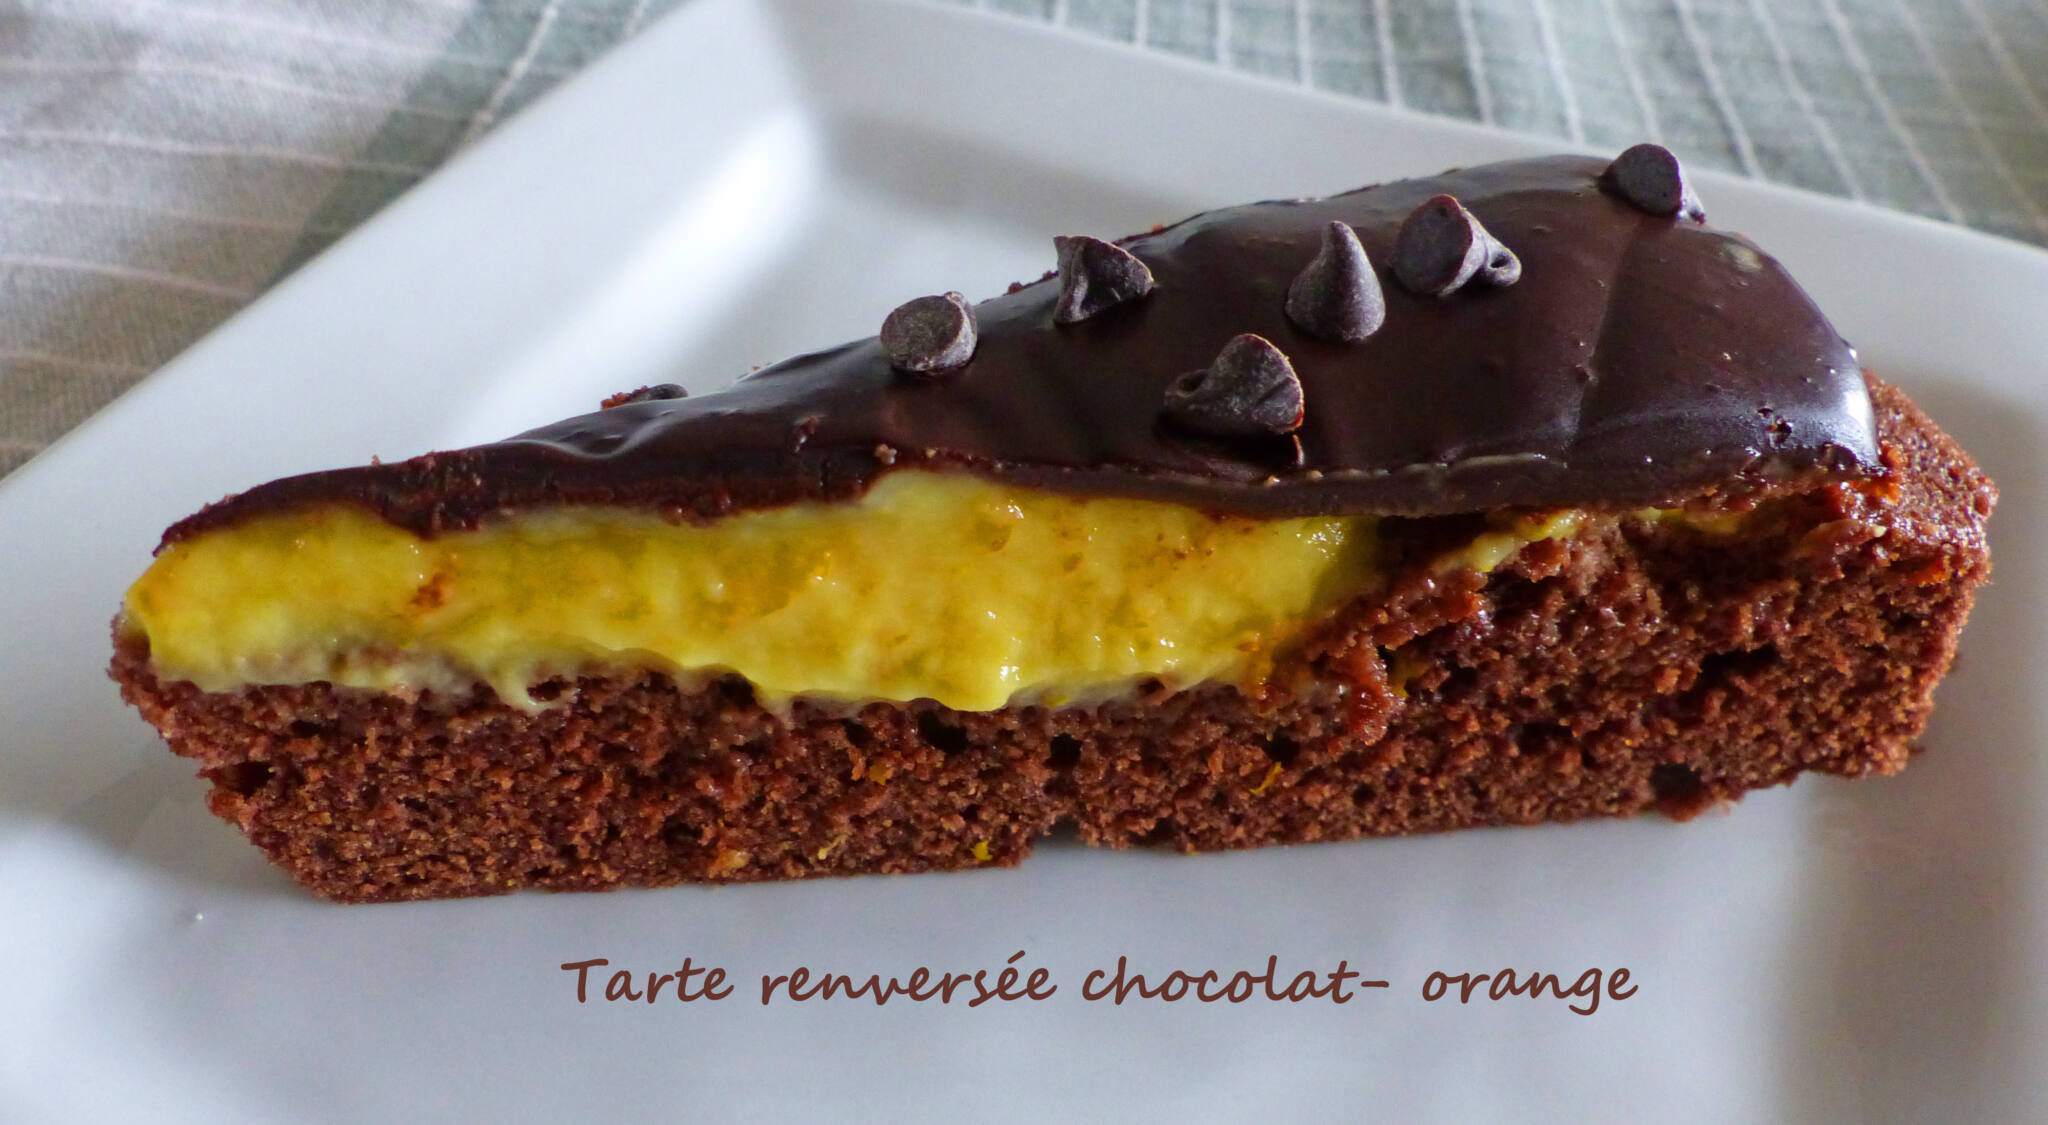 Tarte renversée chocolat- orange P1230208 R